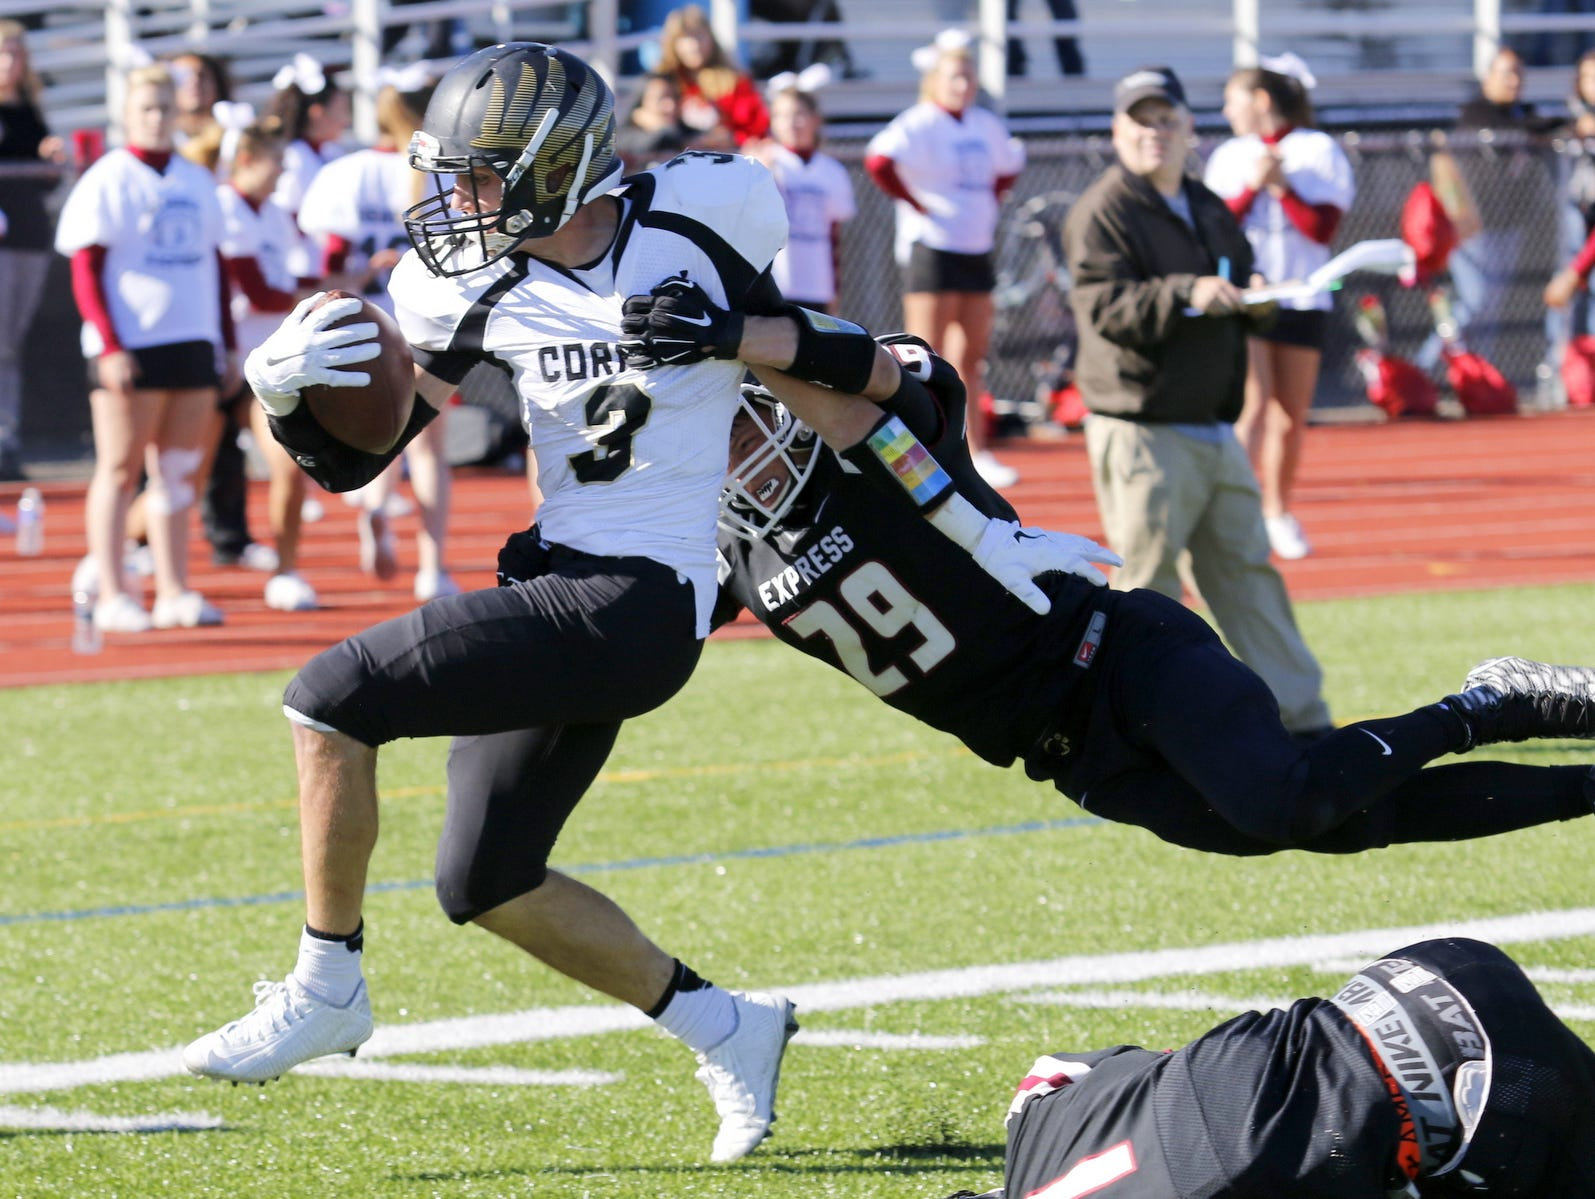 Elmira's Nick Root tackles Corning's Devon Sullivan short of the goal line during Saturday's Section 4 football game at Marty Harrigan Field.